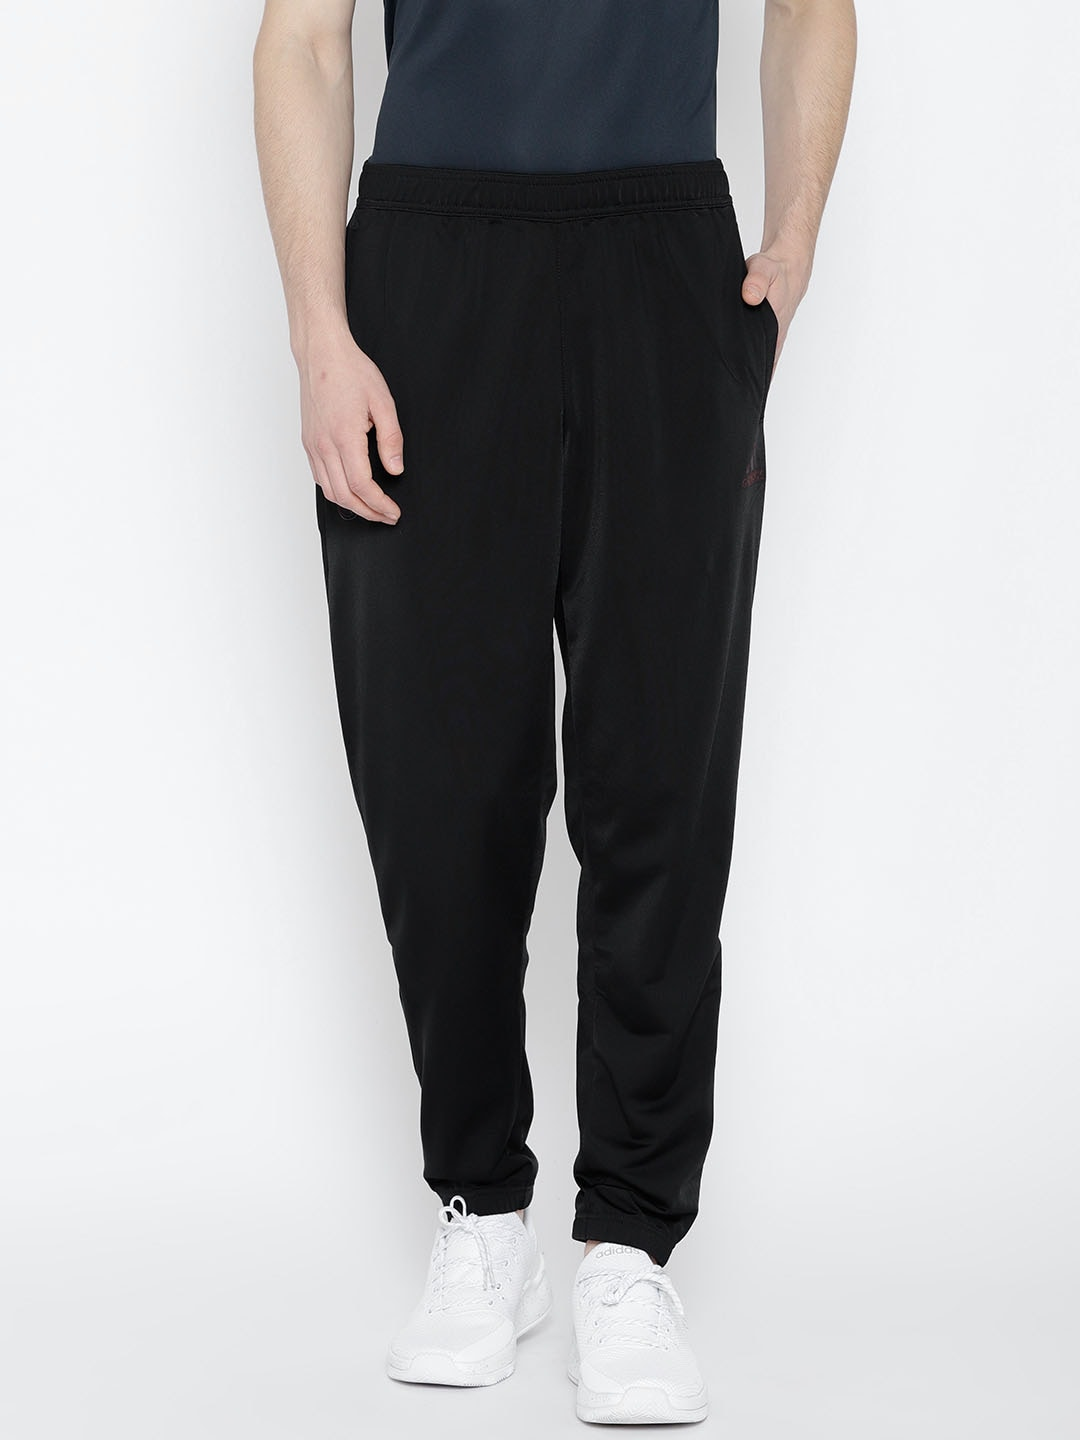 5f2d61a96ae3 Adidas Polyester Track Pants Trousers - Buy Adidas Polyester Track Pants  Trousers online in India